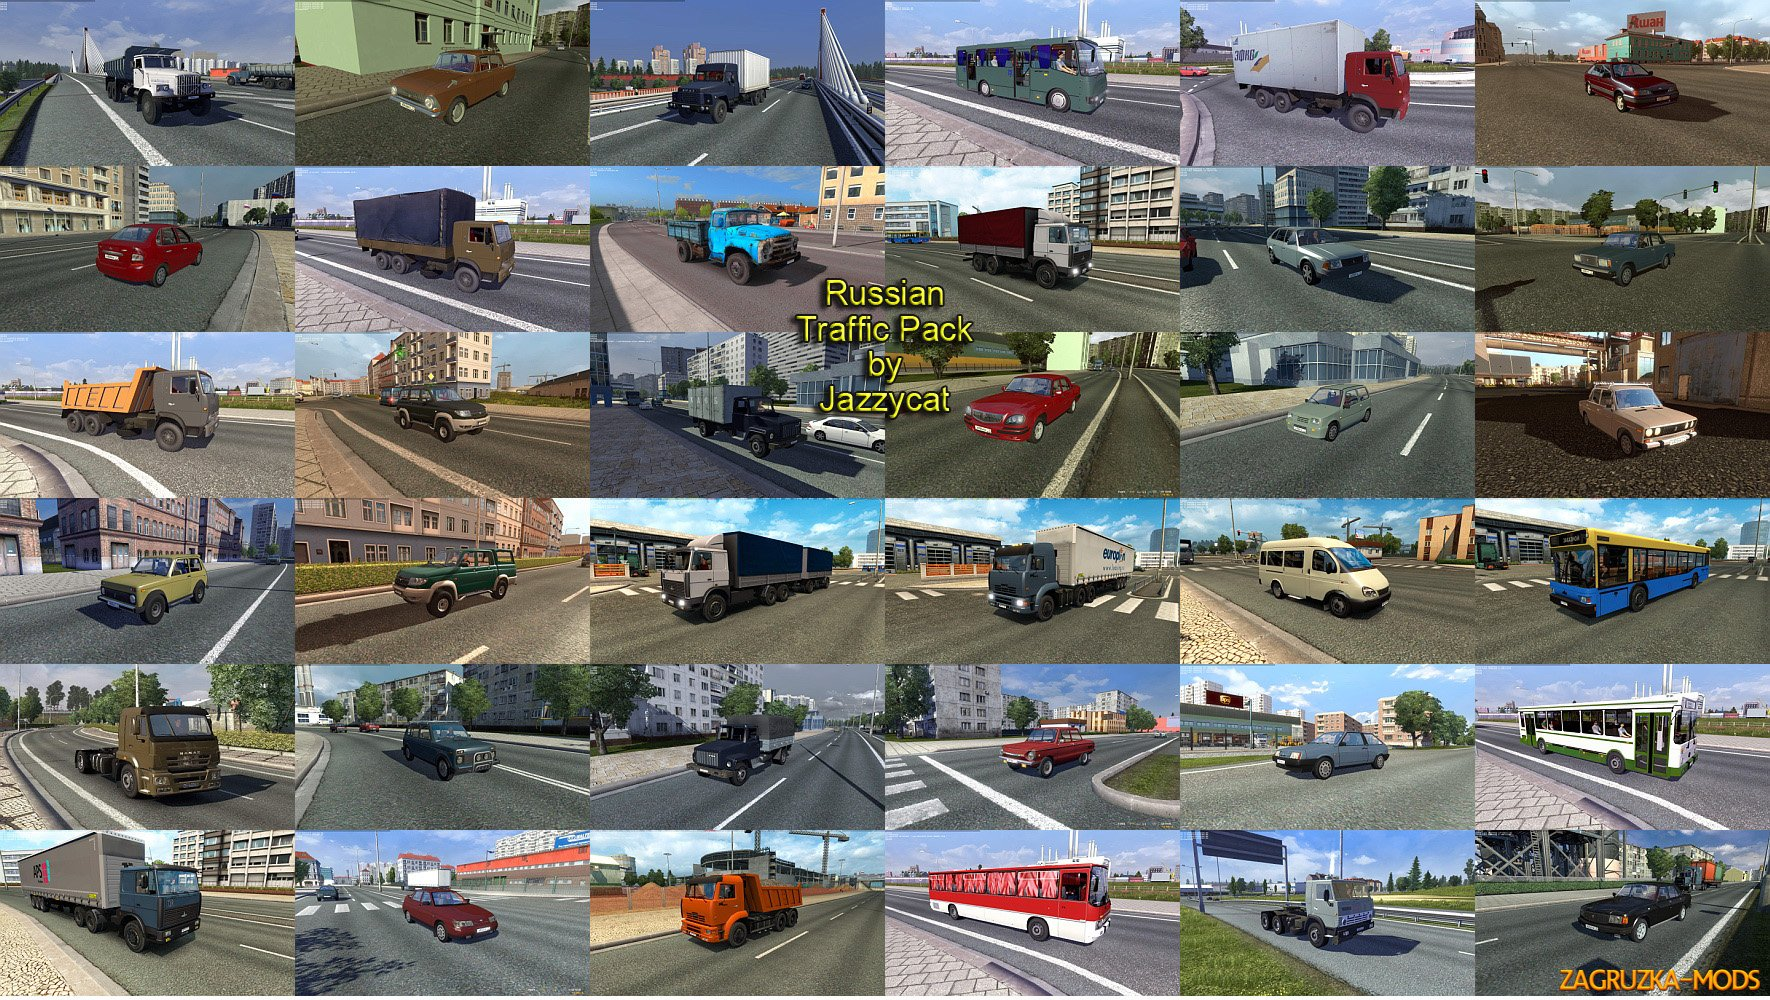 Russian Traffic Pack v1.6.1 by Jazzycat (1.24.x) for ETS 2